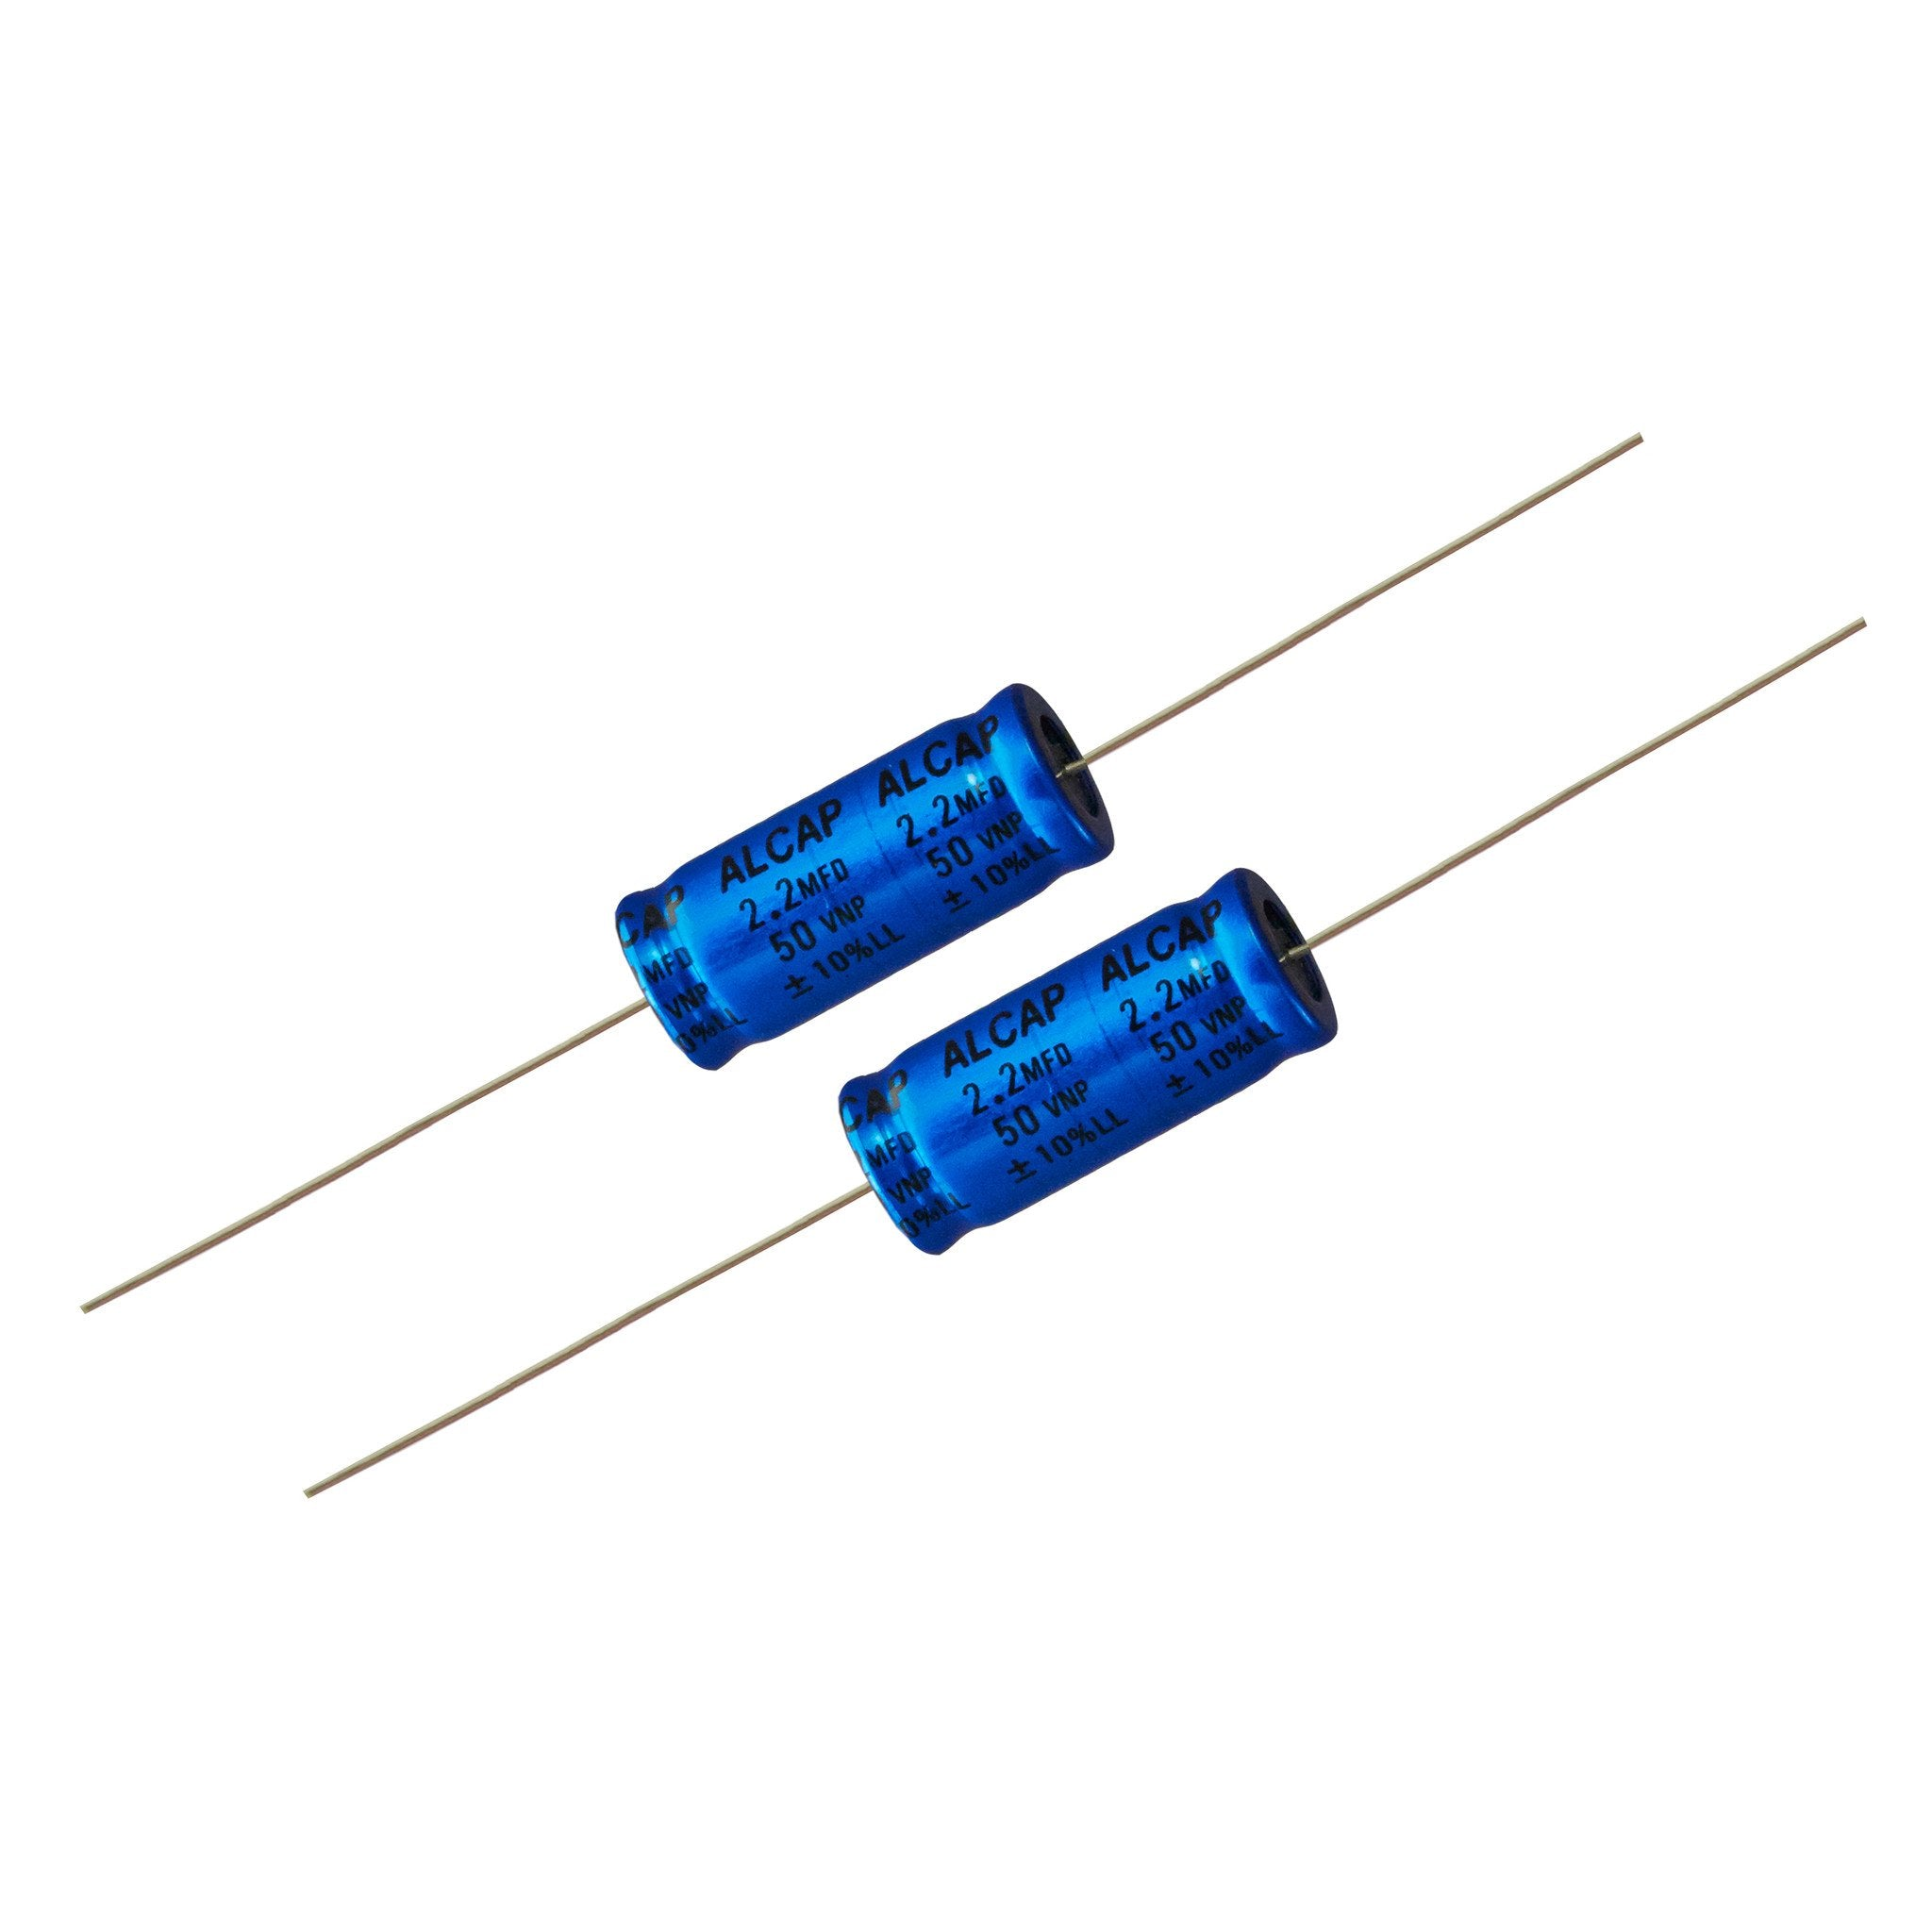 ALCAP 2.2uf Electrolytic Bipolar Capacitors - Willys-Hifi Ltd